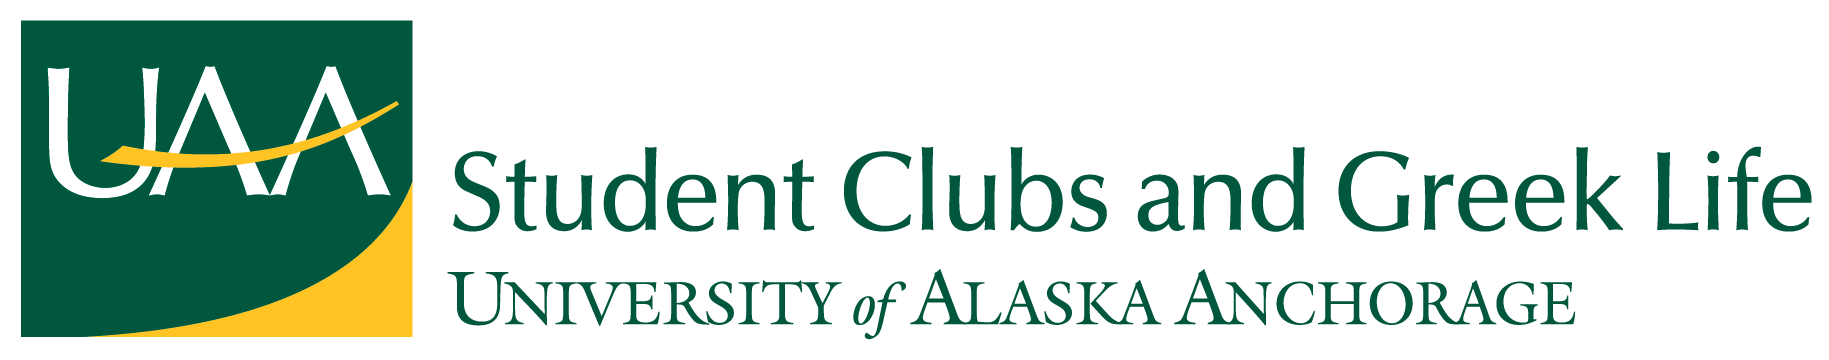 UAA Student Clubs and Greek Life Logo